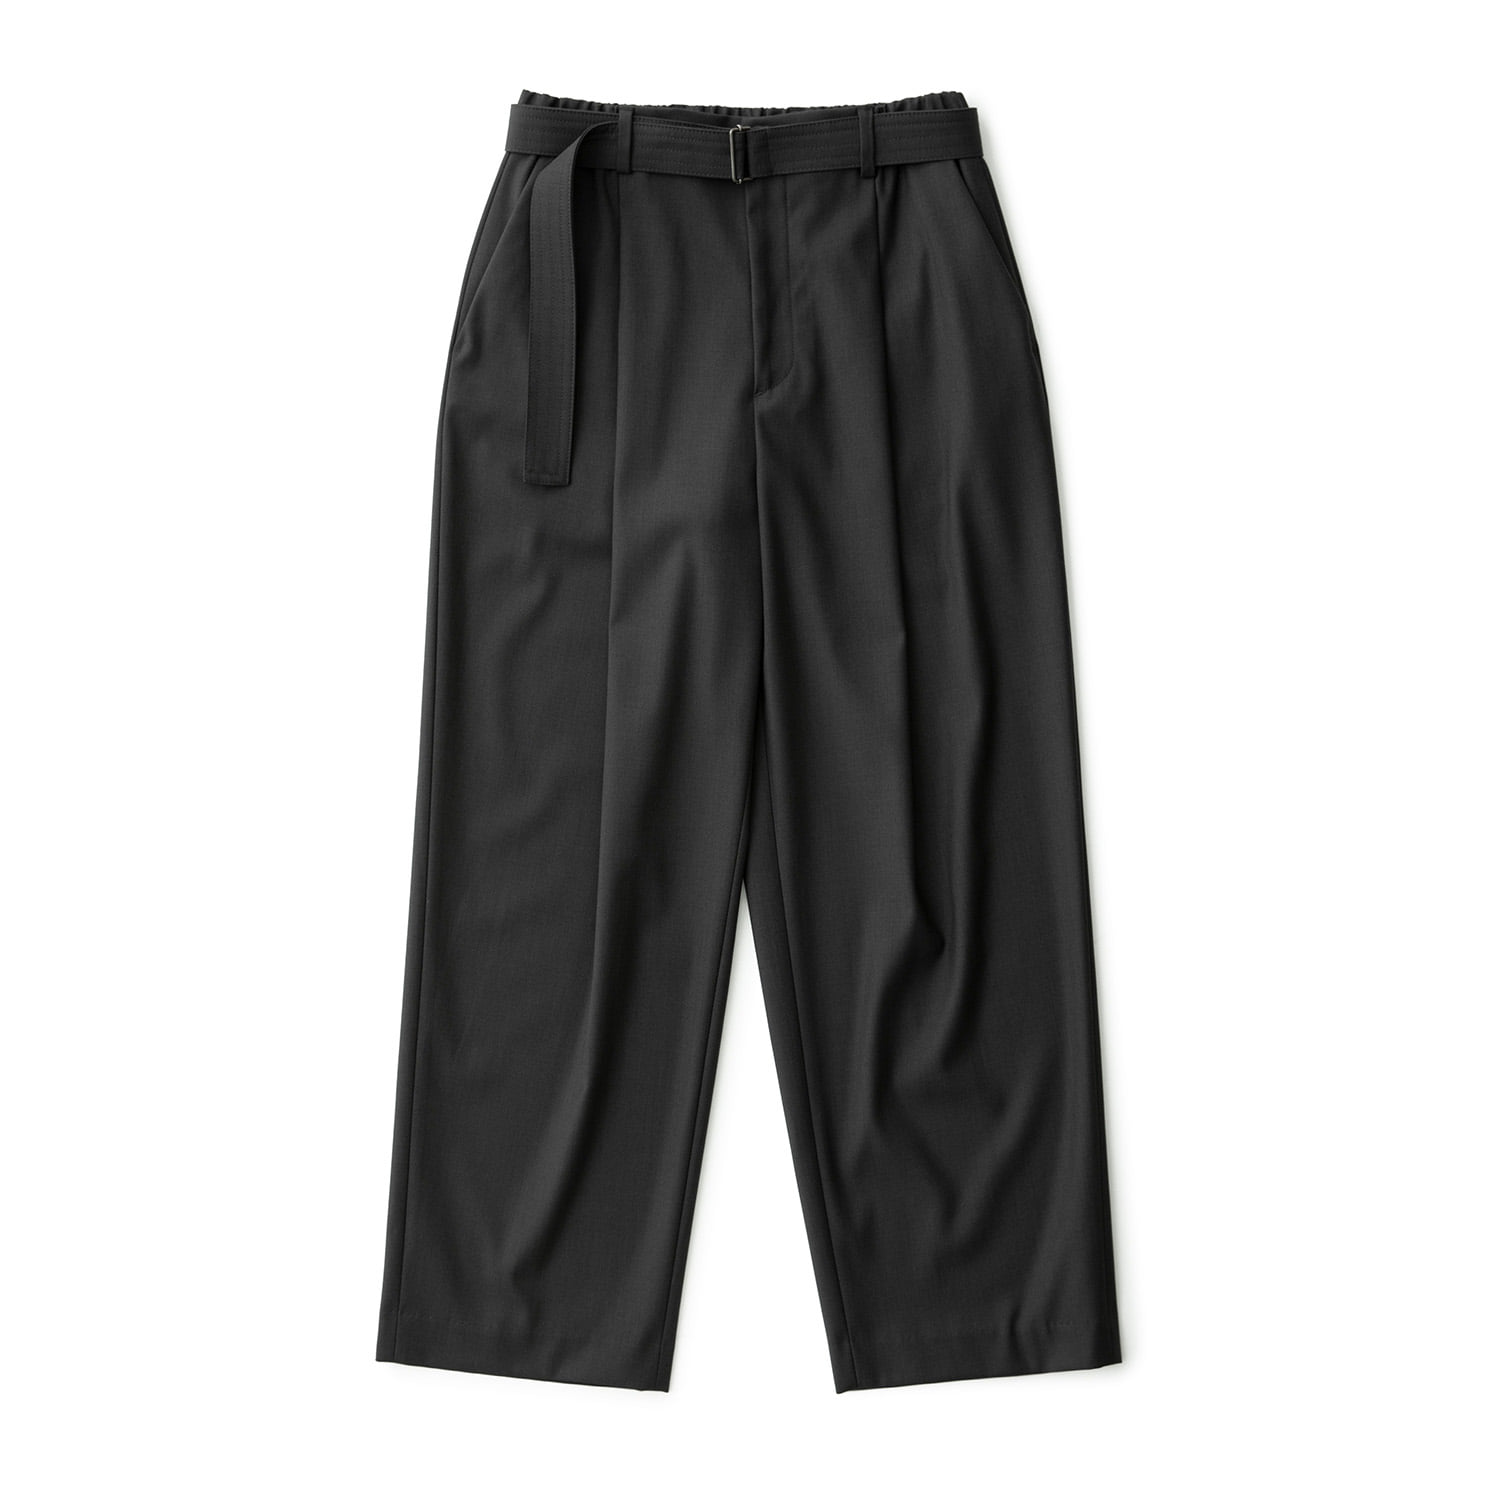 [재입고] Calm Banded Pants (Charcoal)